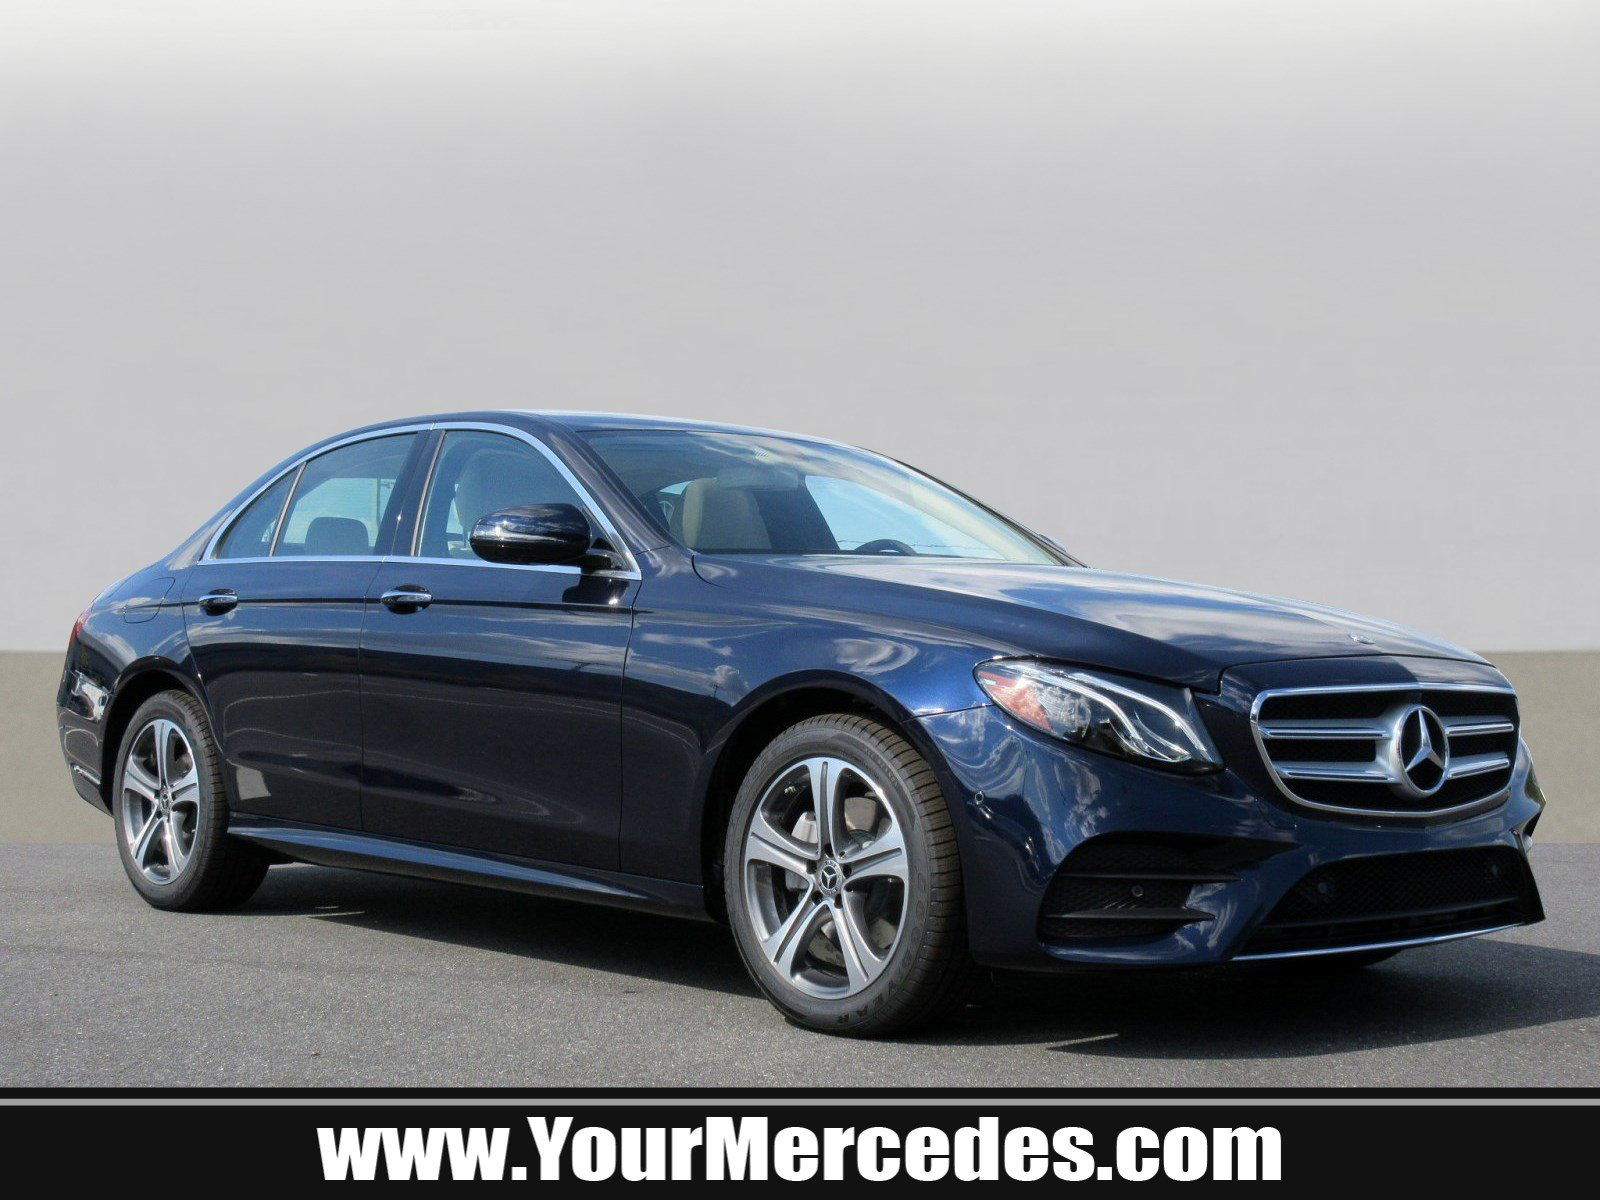 New 2019 Mercedes Benz E Class E 300 4dr Car in West Chester